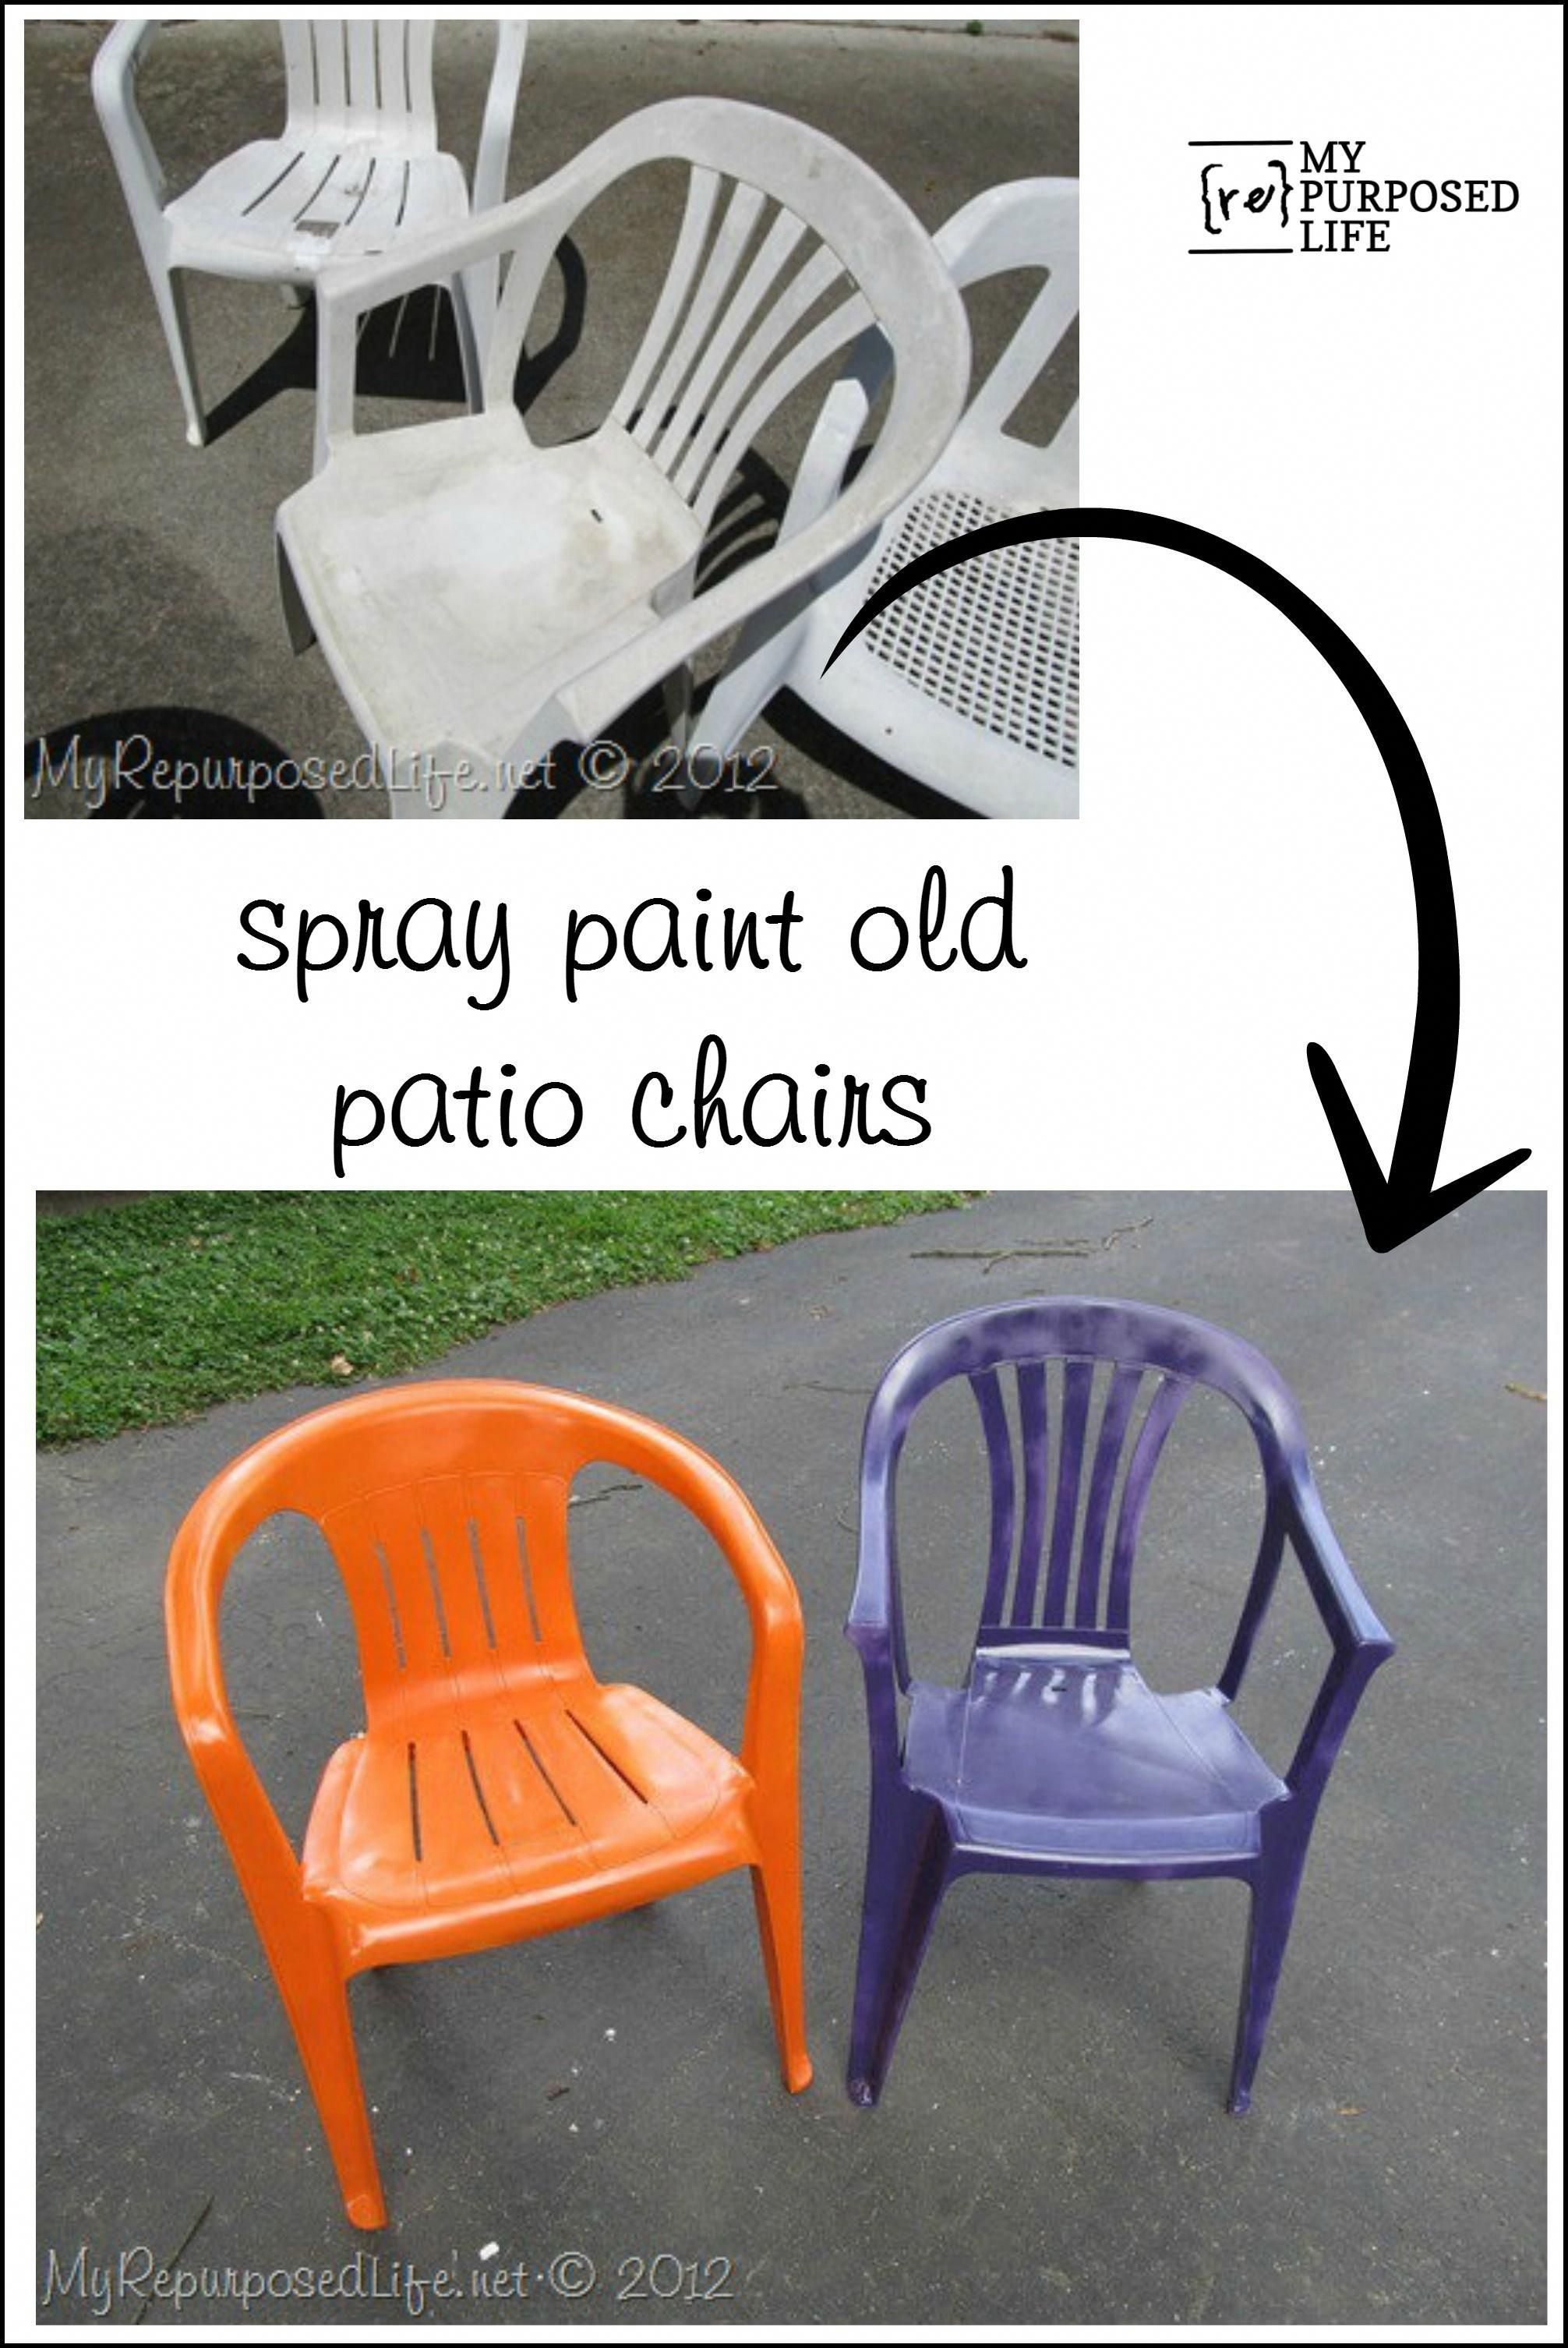 how to spray paint plastic chairs you know those old white chairs rh pinterest com